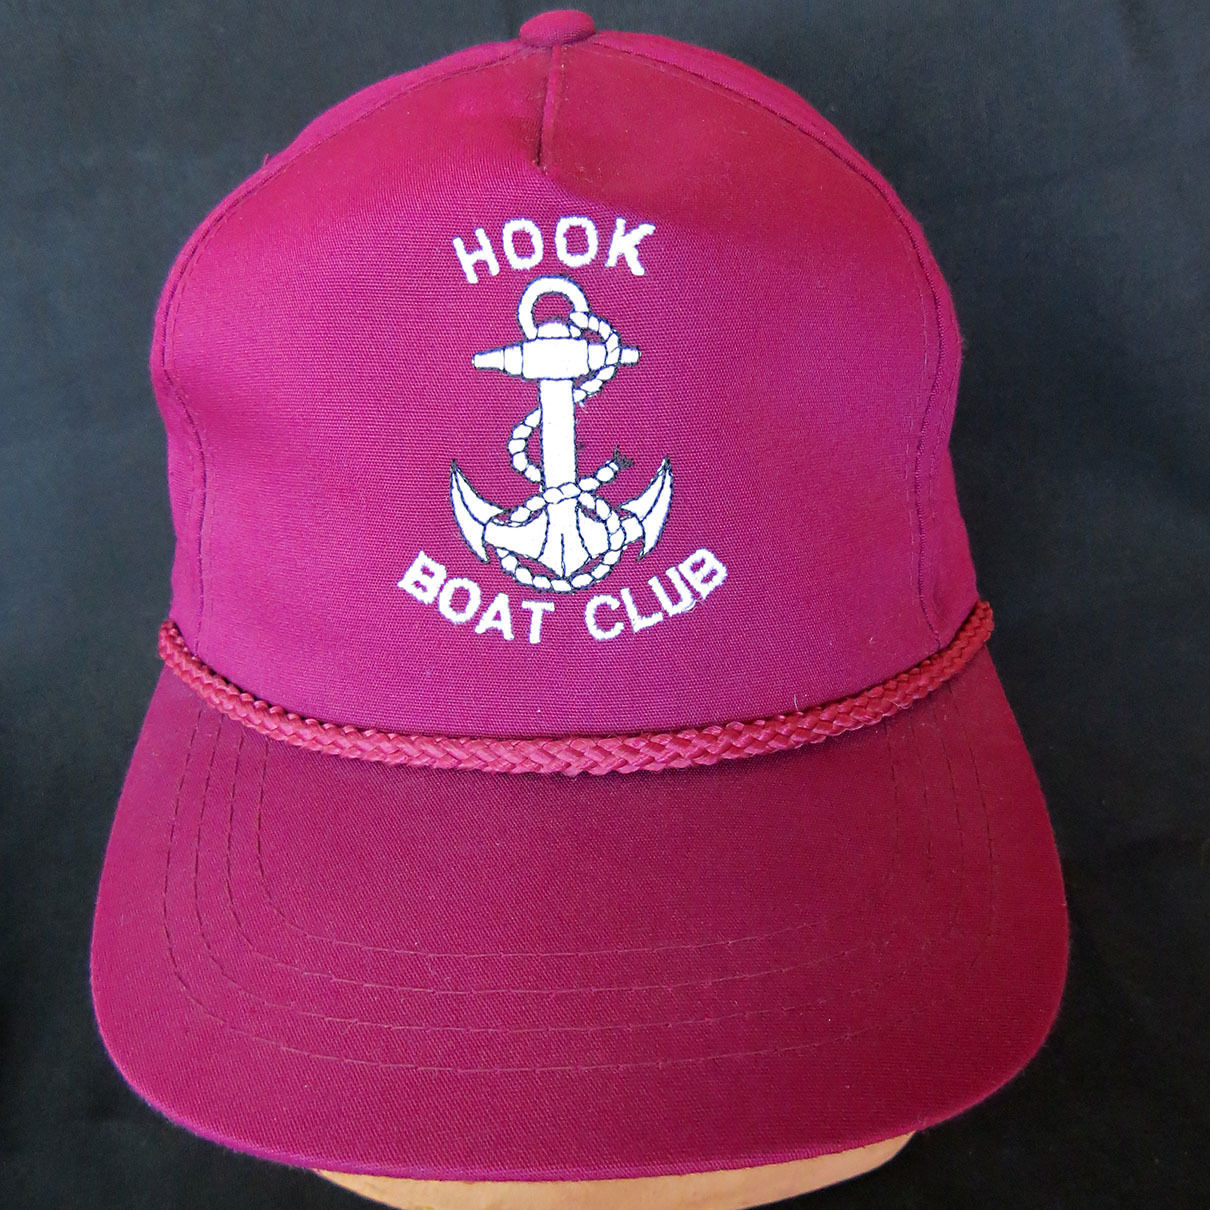 2928b376973 Vintage Hook Boat Club Snapback Hat Cap Rope and 50 similar items